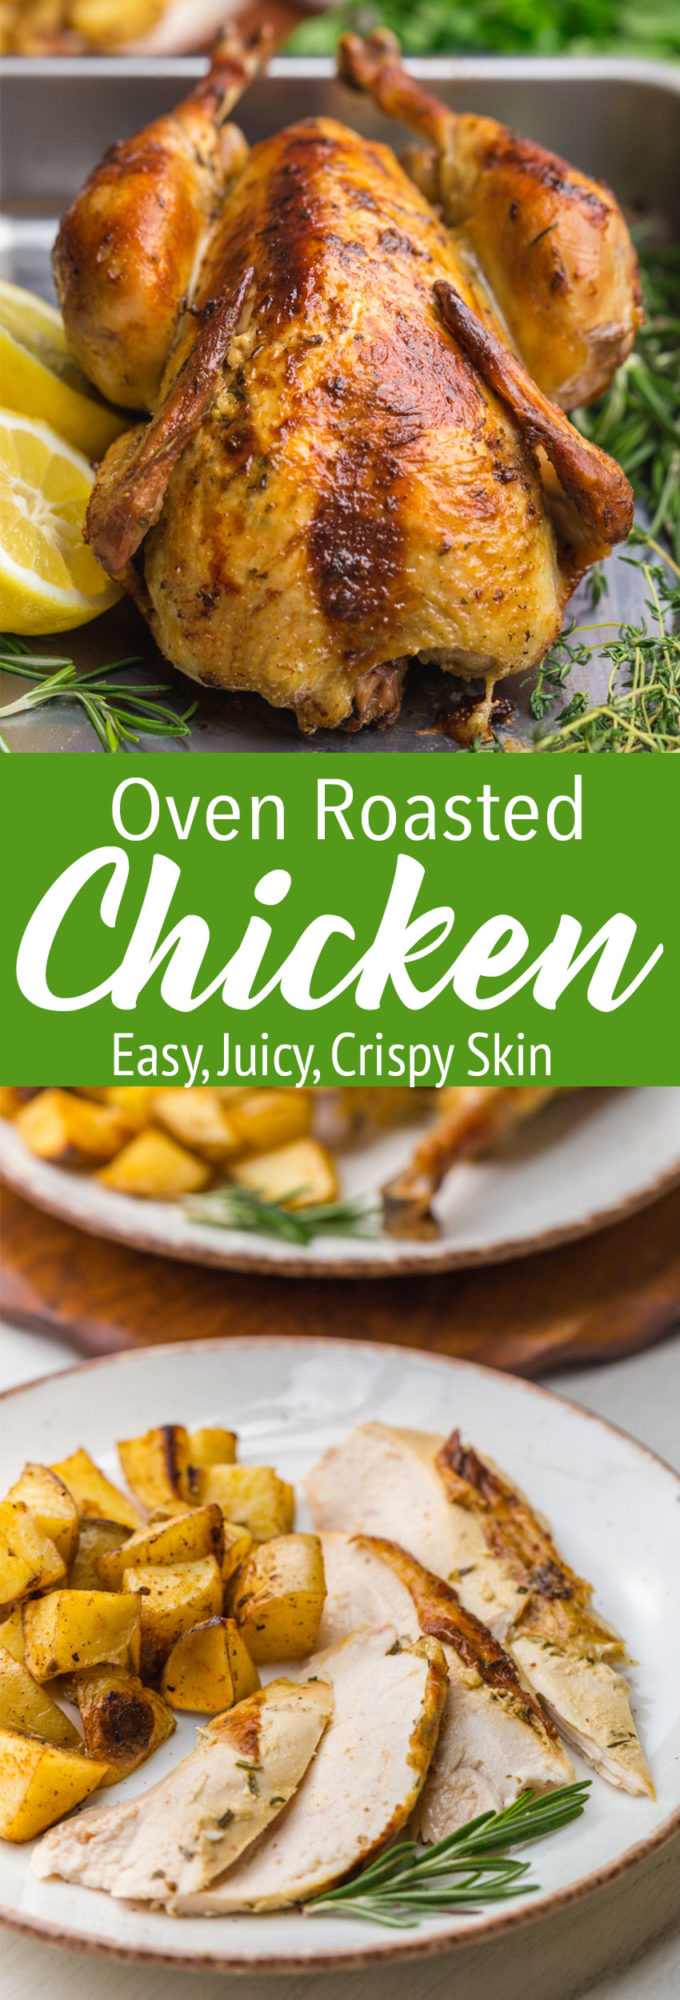 Deliciously oven roasted chicken, it is easy, juicy, and crispy skinned